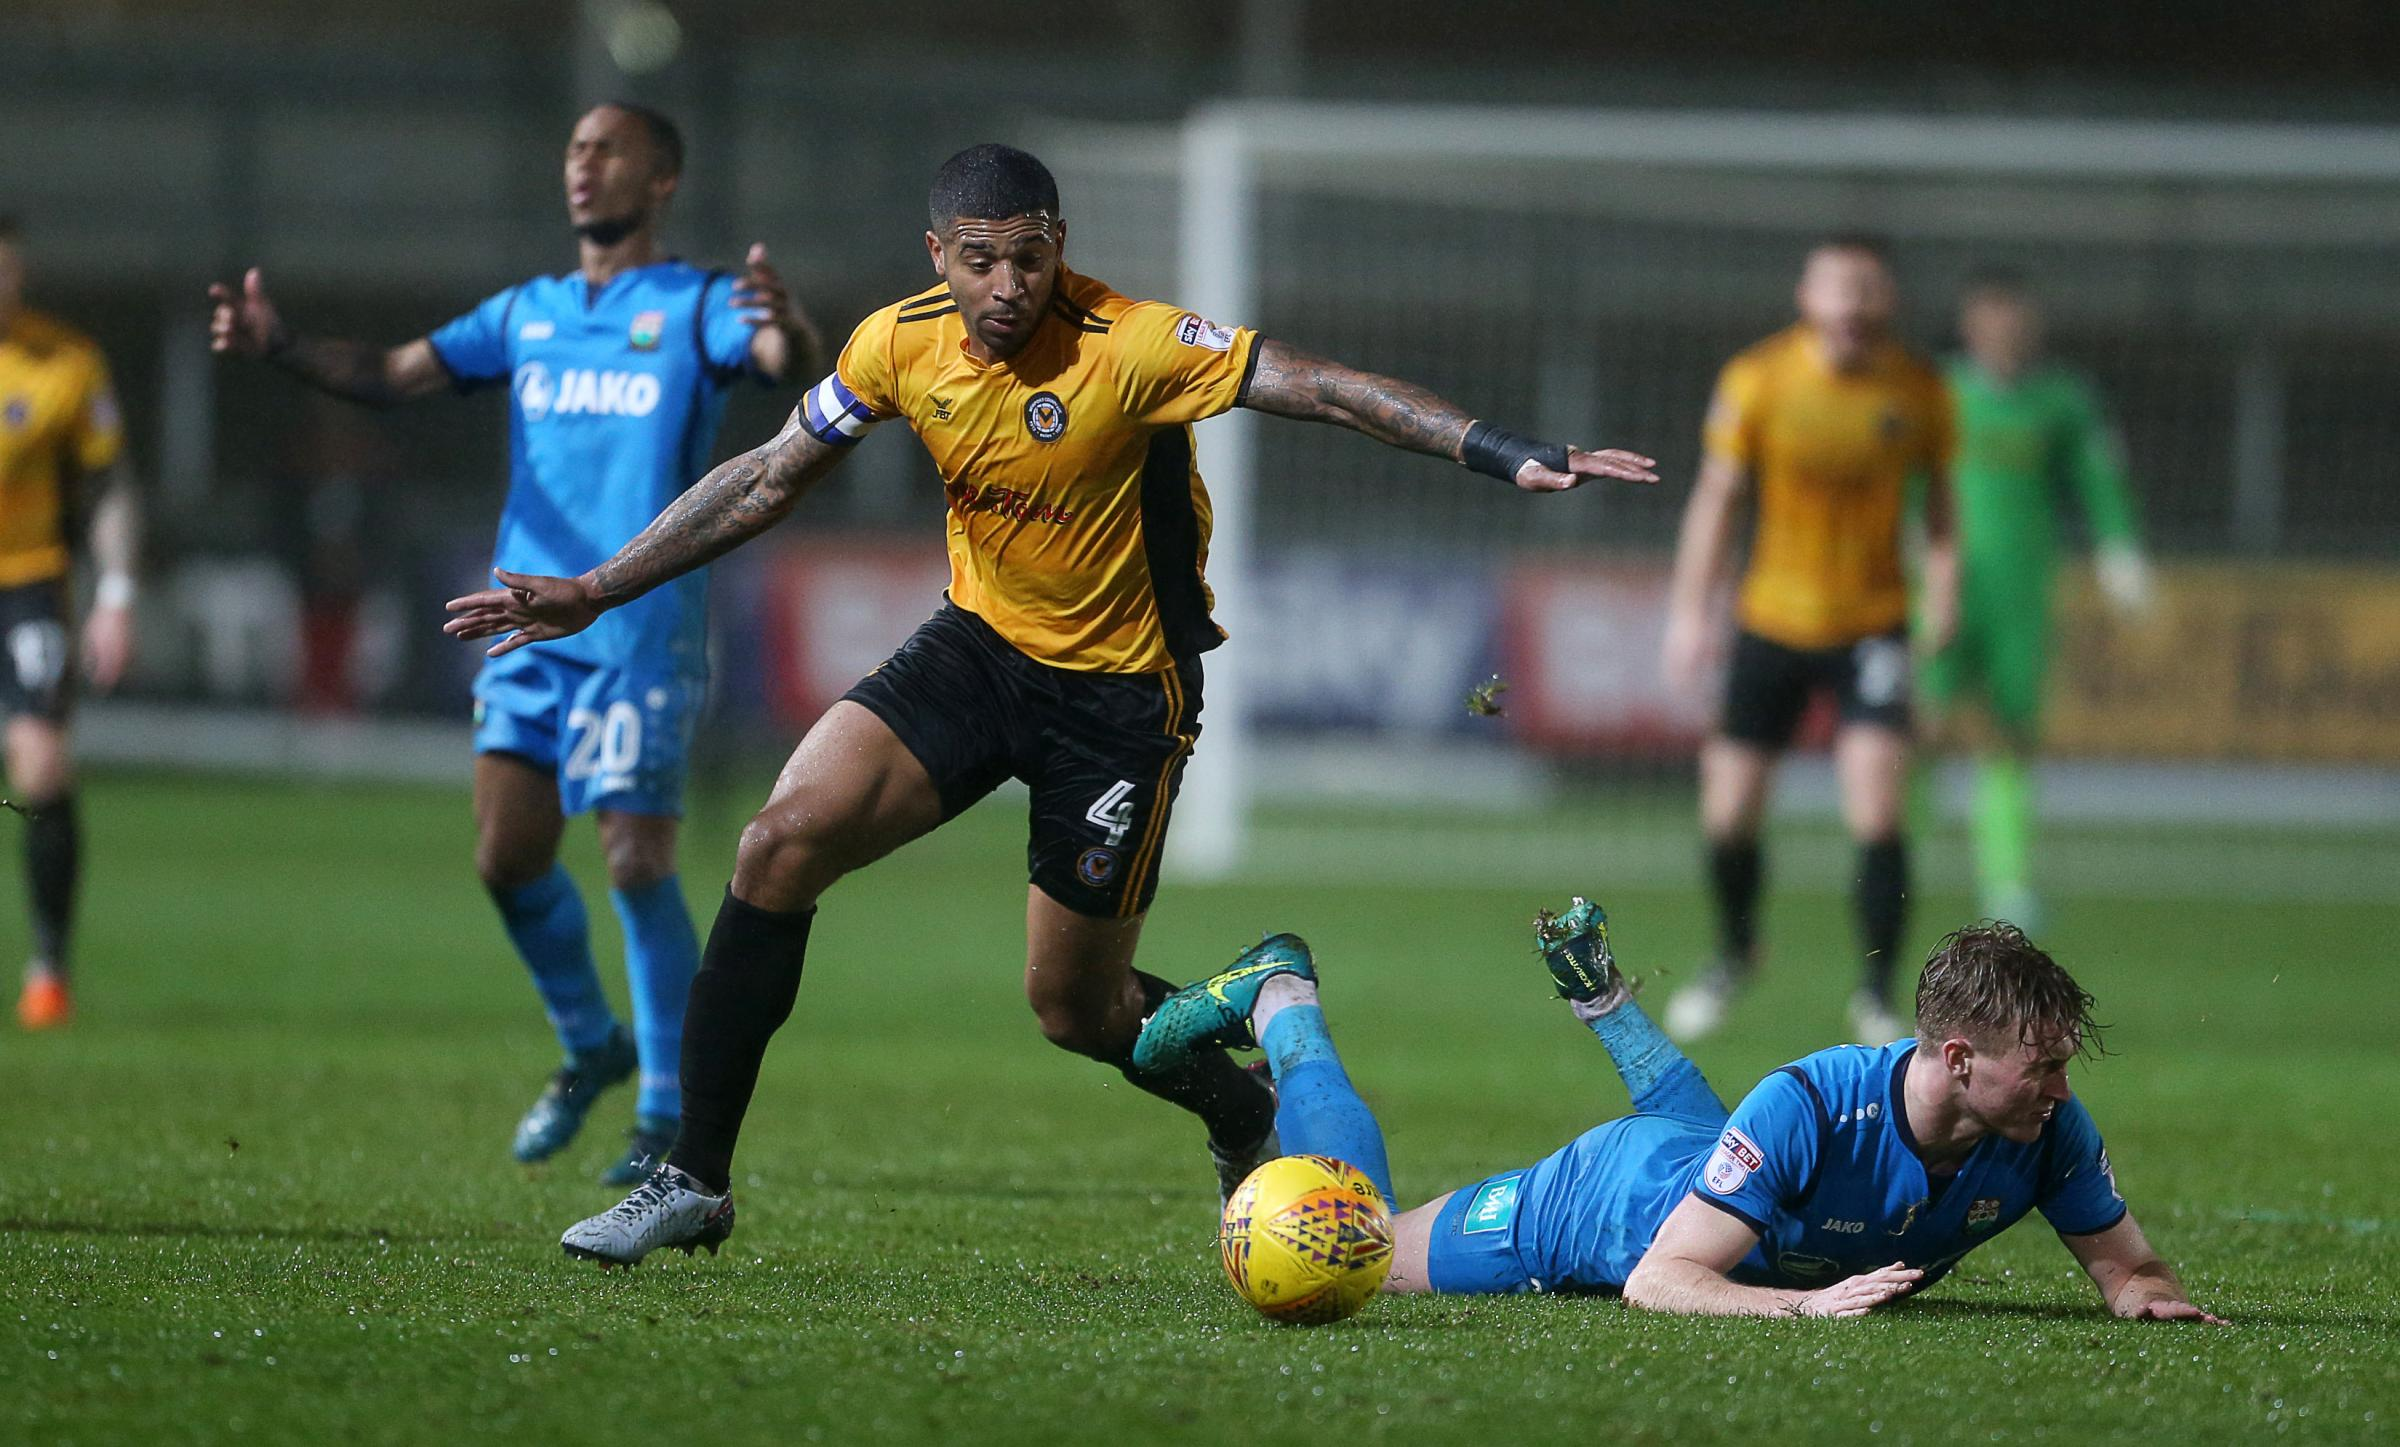 SKIPPER: Joss Labadie's Newport County contract has now expired